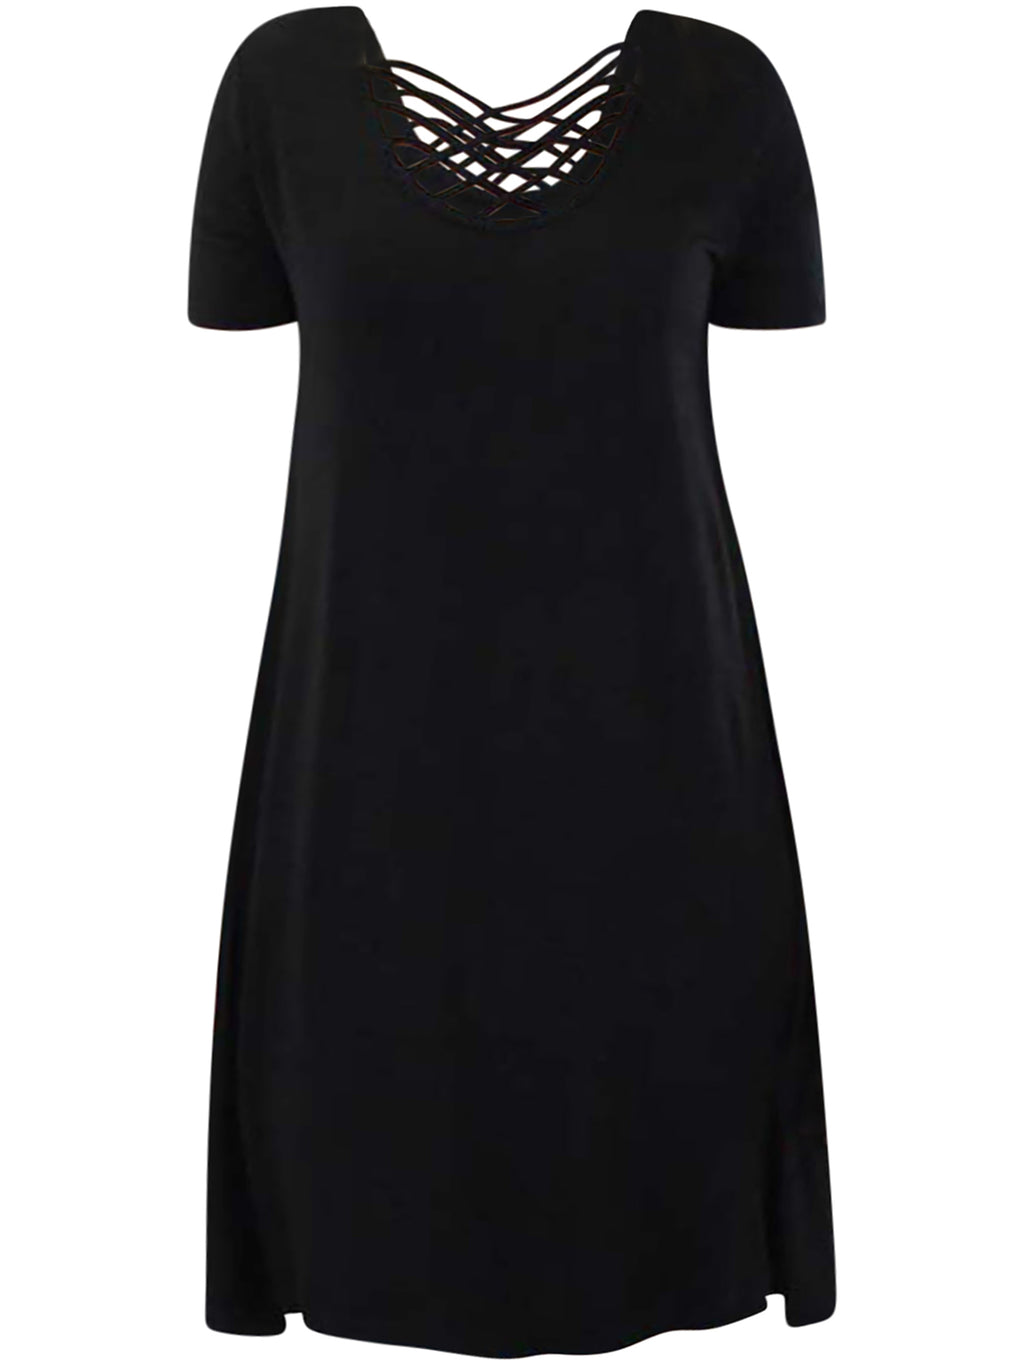 Short Sleeve Midi Dress With Criss-Cross Neckline